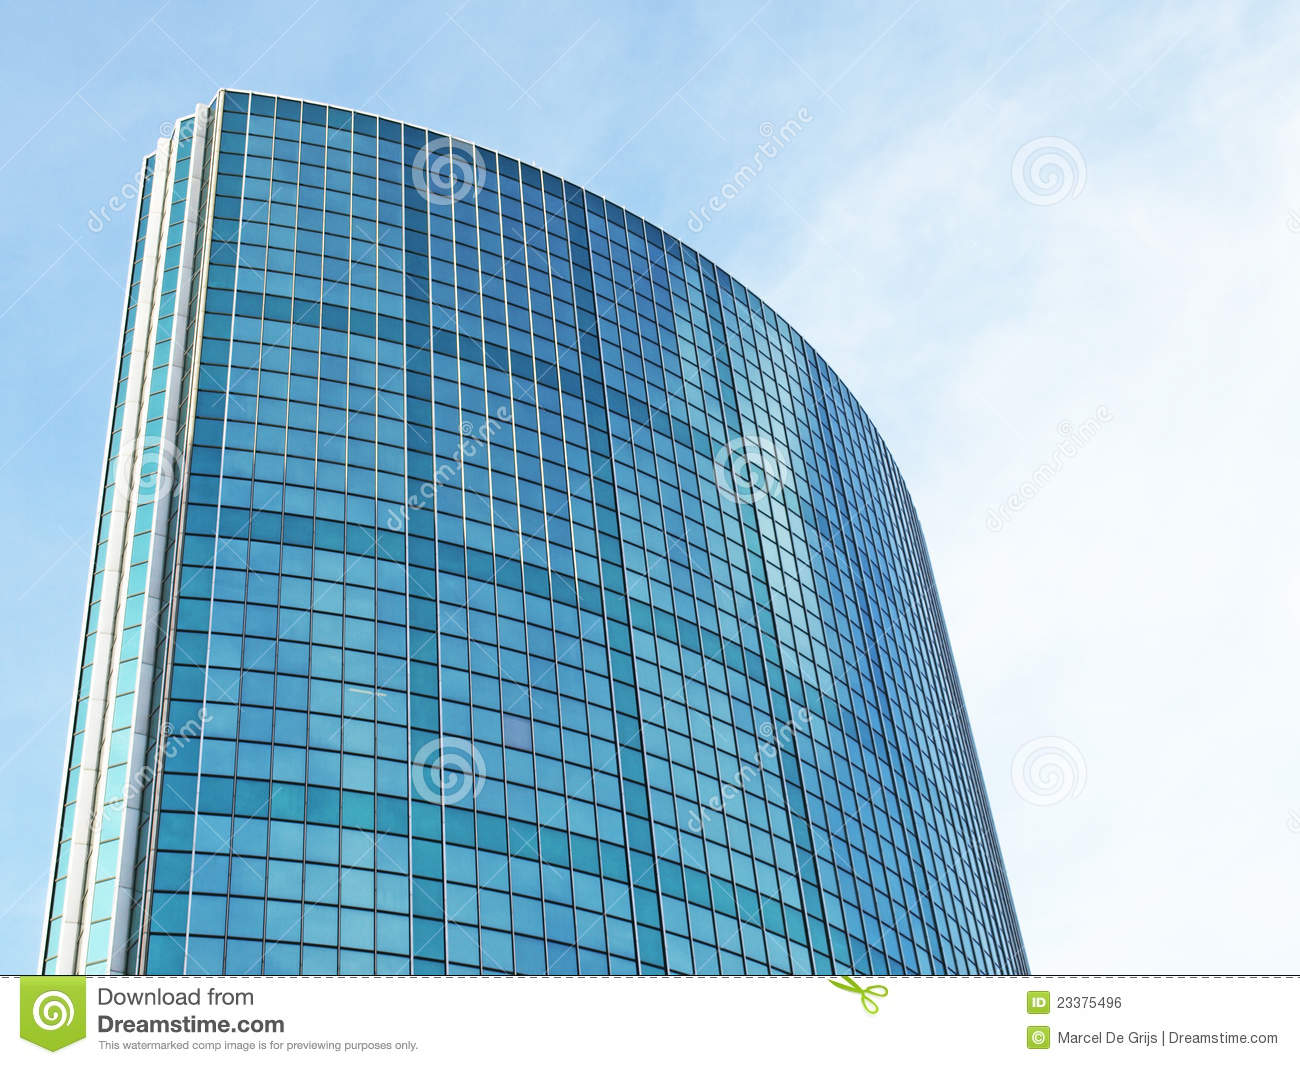 Building Glass Window : Mirror glass building royalty free stock image